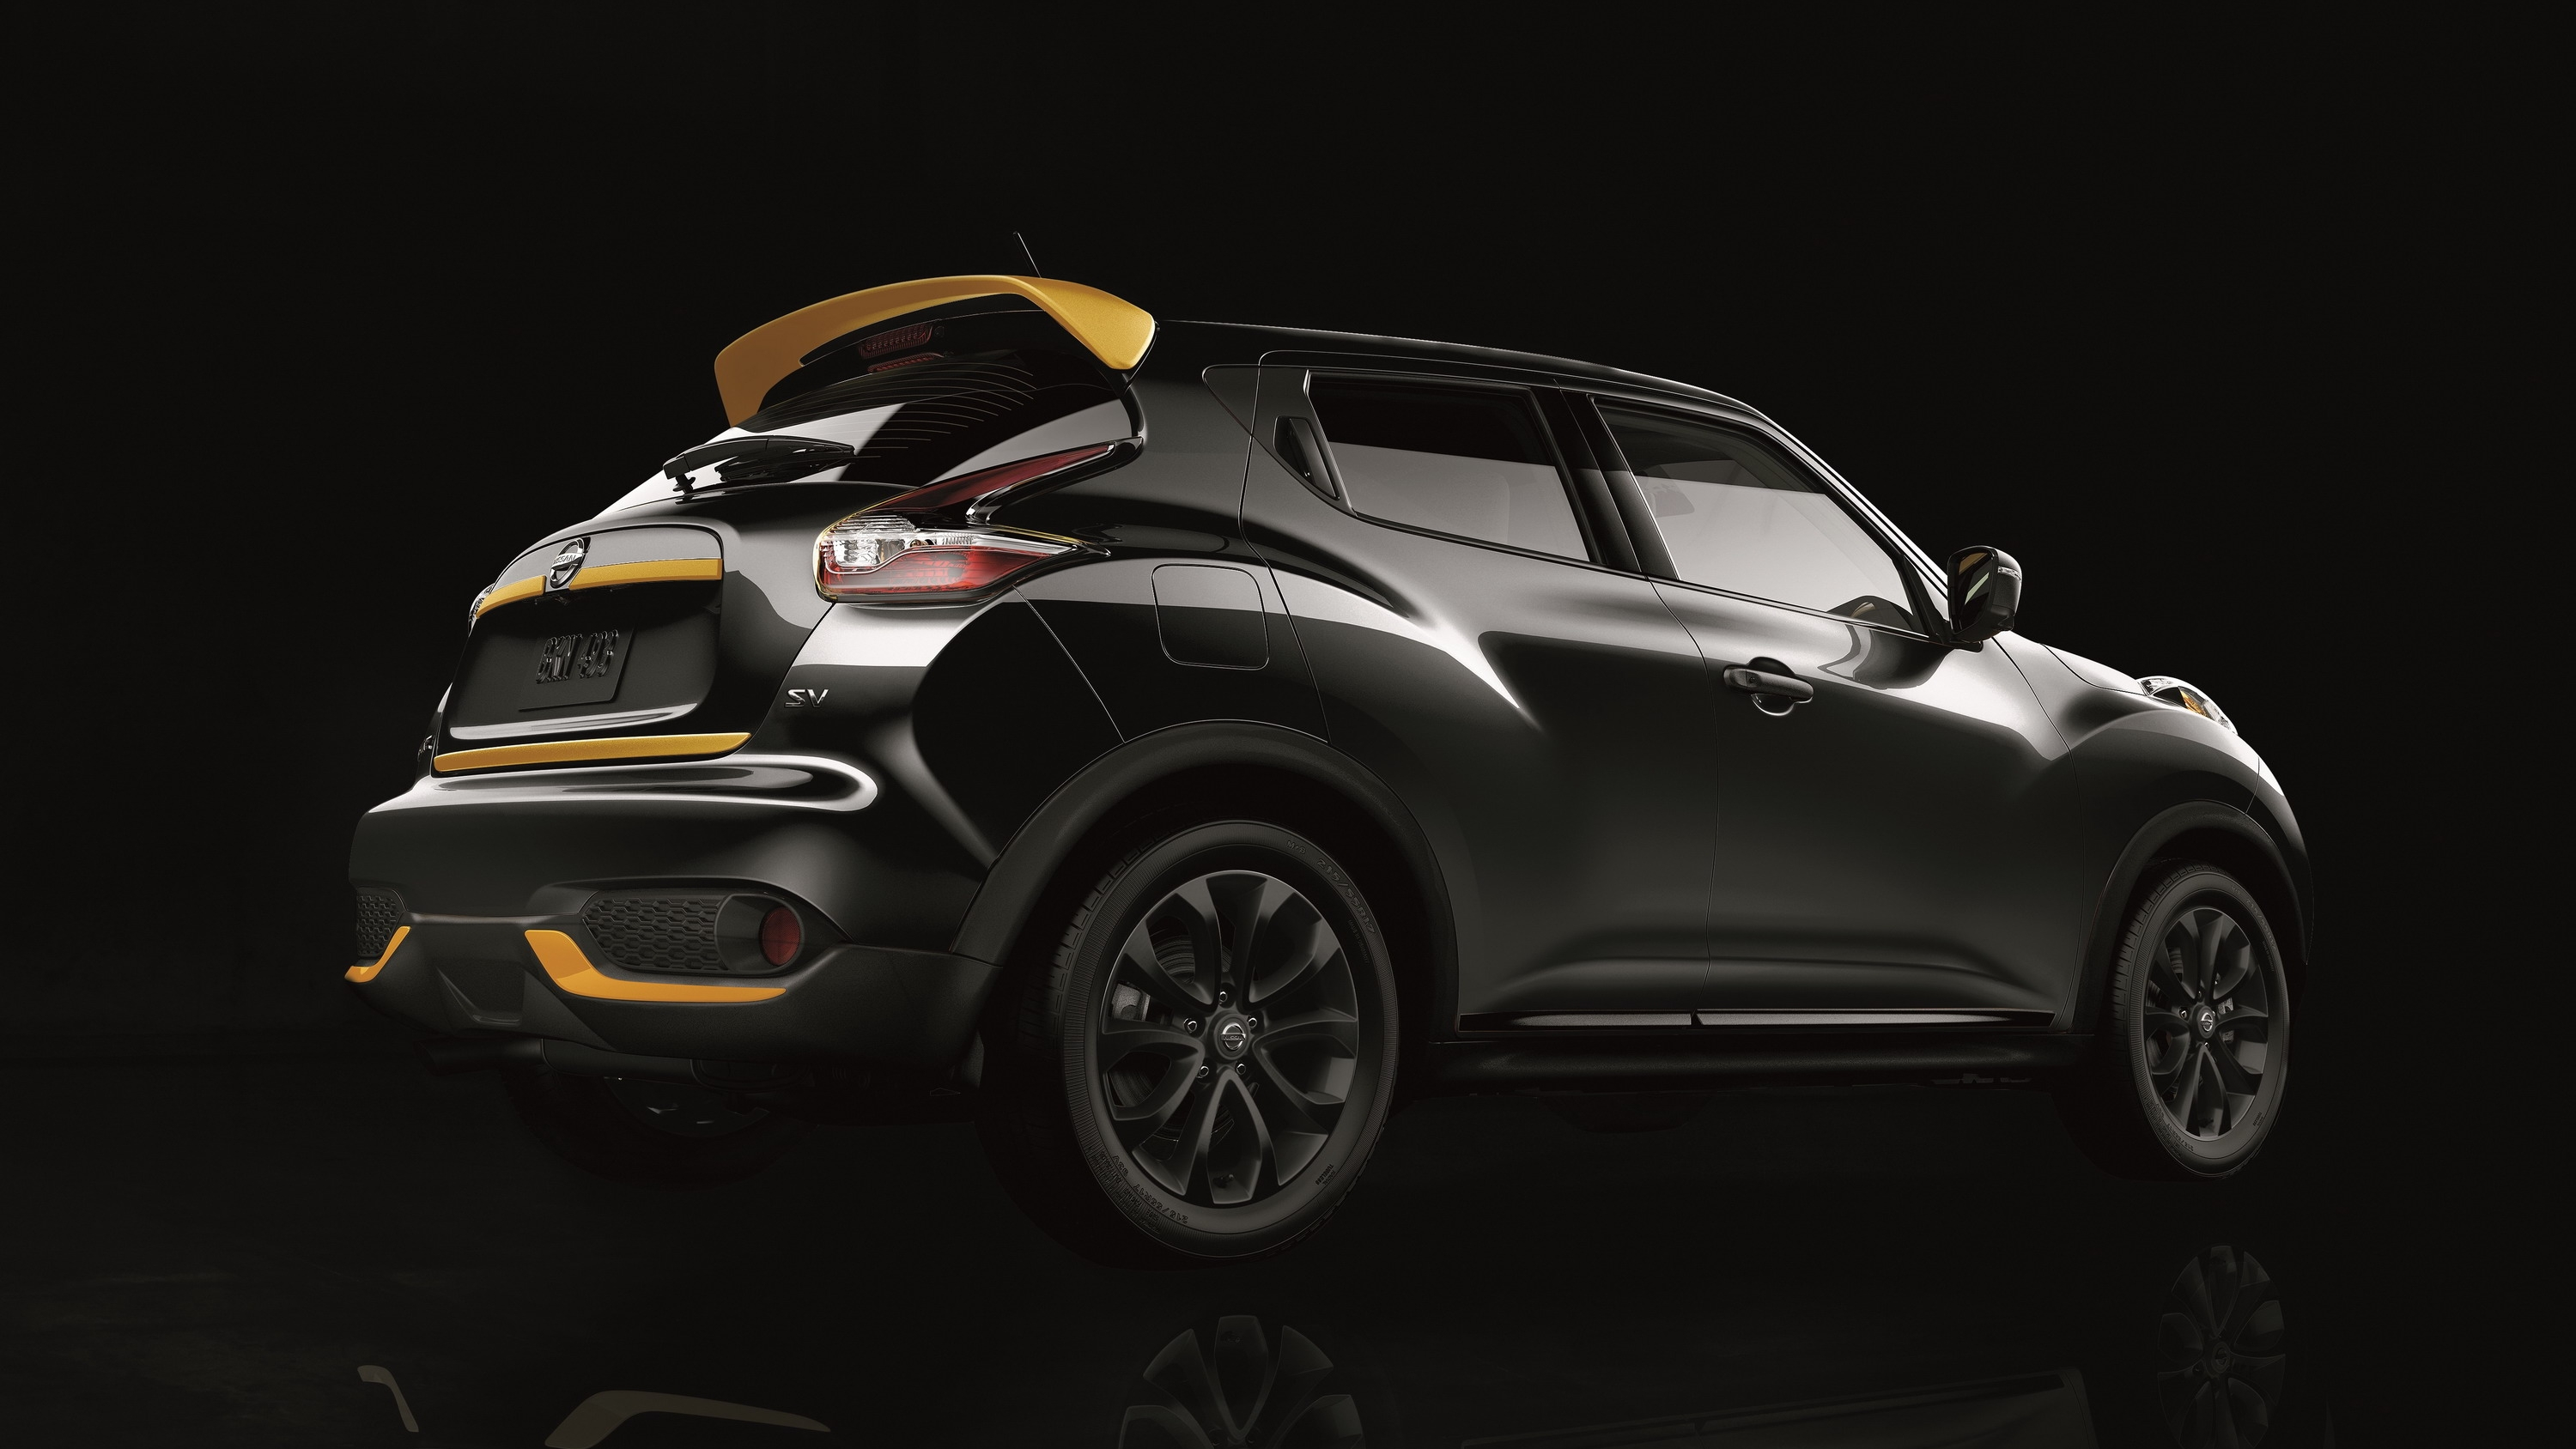 2016 Nissan Juke Quot Stinger Edition By Color Studio Quot Top Speed